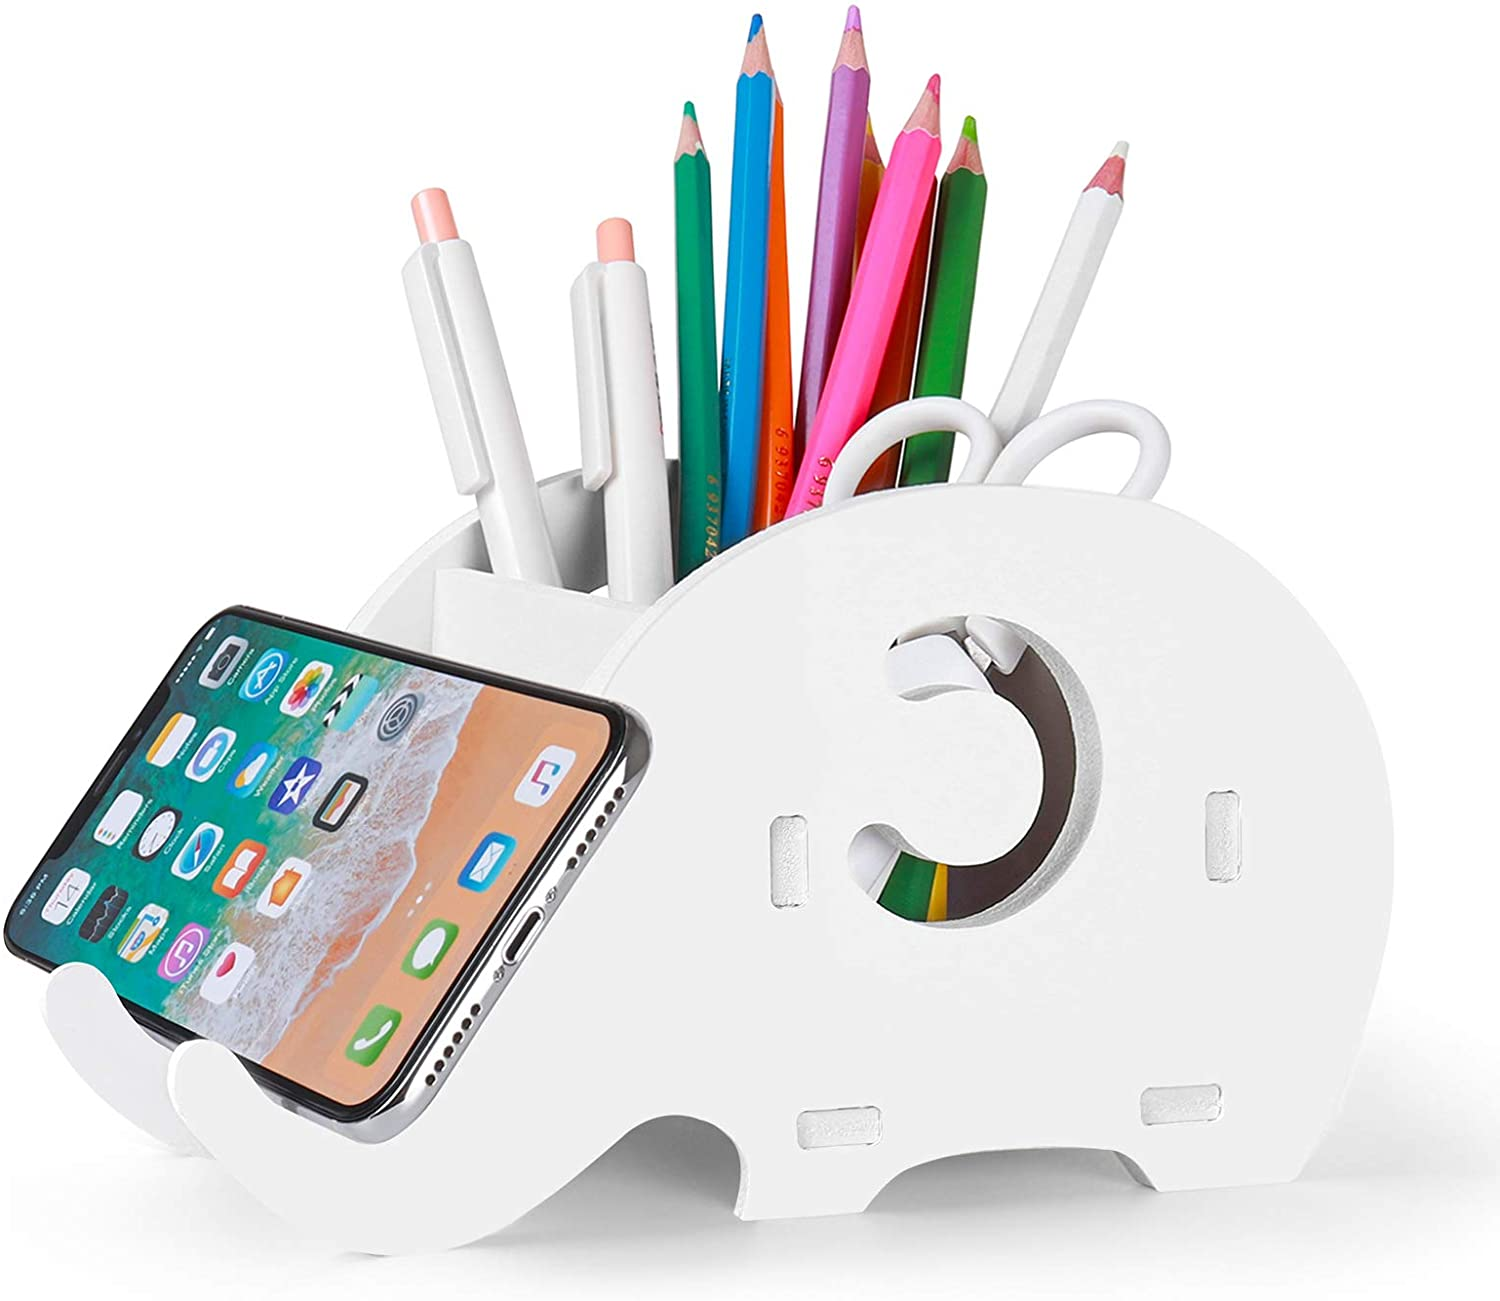 Creative Elephant Pencil Holder Multifunctional Office Accessories Desk Decoration with Cell Phone Stand Tablet Desk Bracket for iPad iPhone Smartphone and More Mokani Desk Supplies Organizer